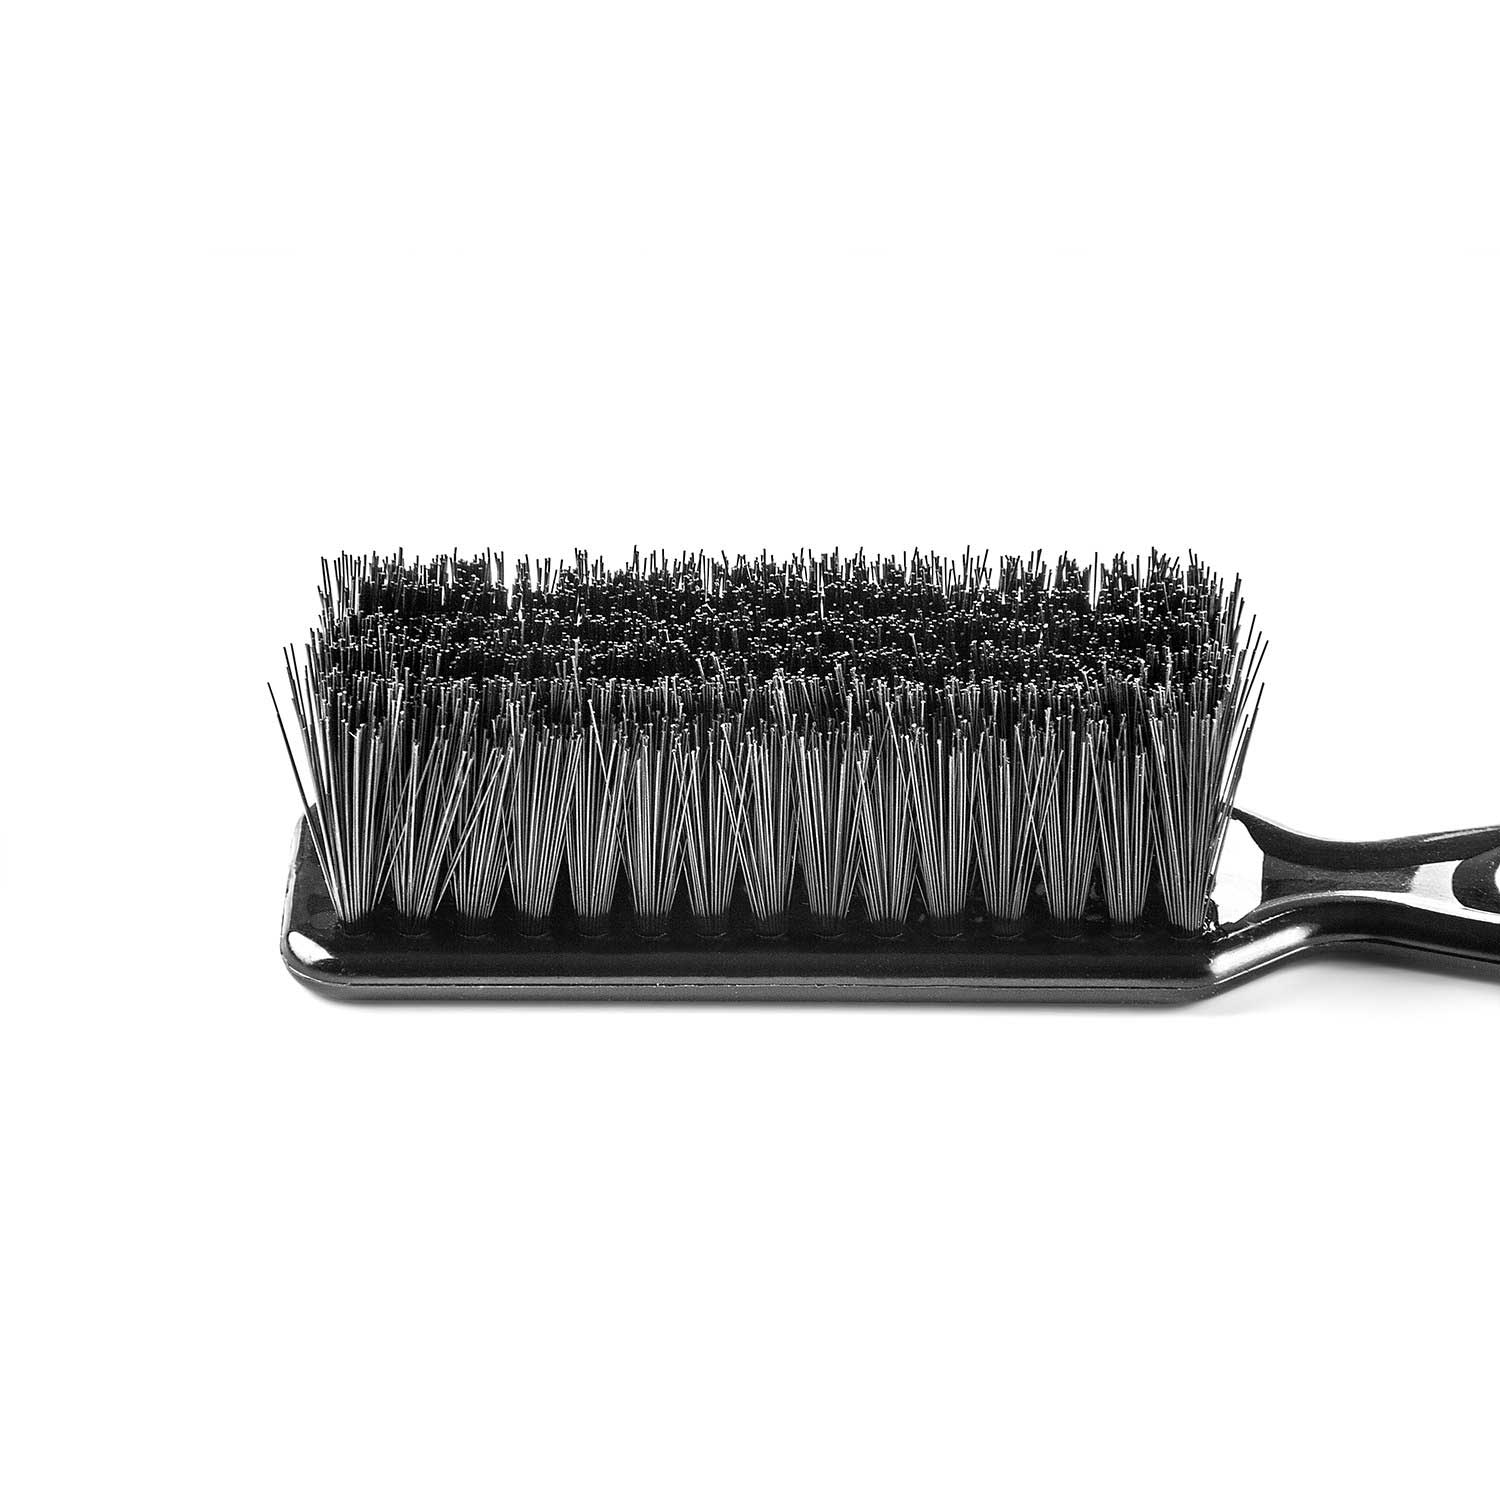 barberburste-beardburys-fade-pro-brush 2